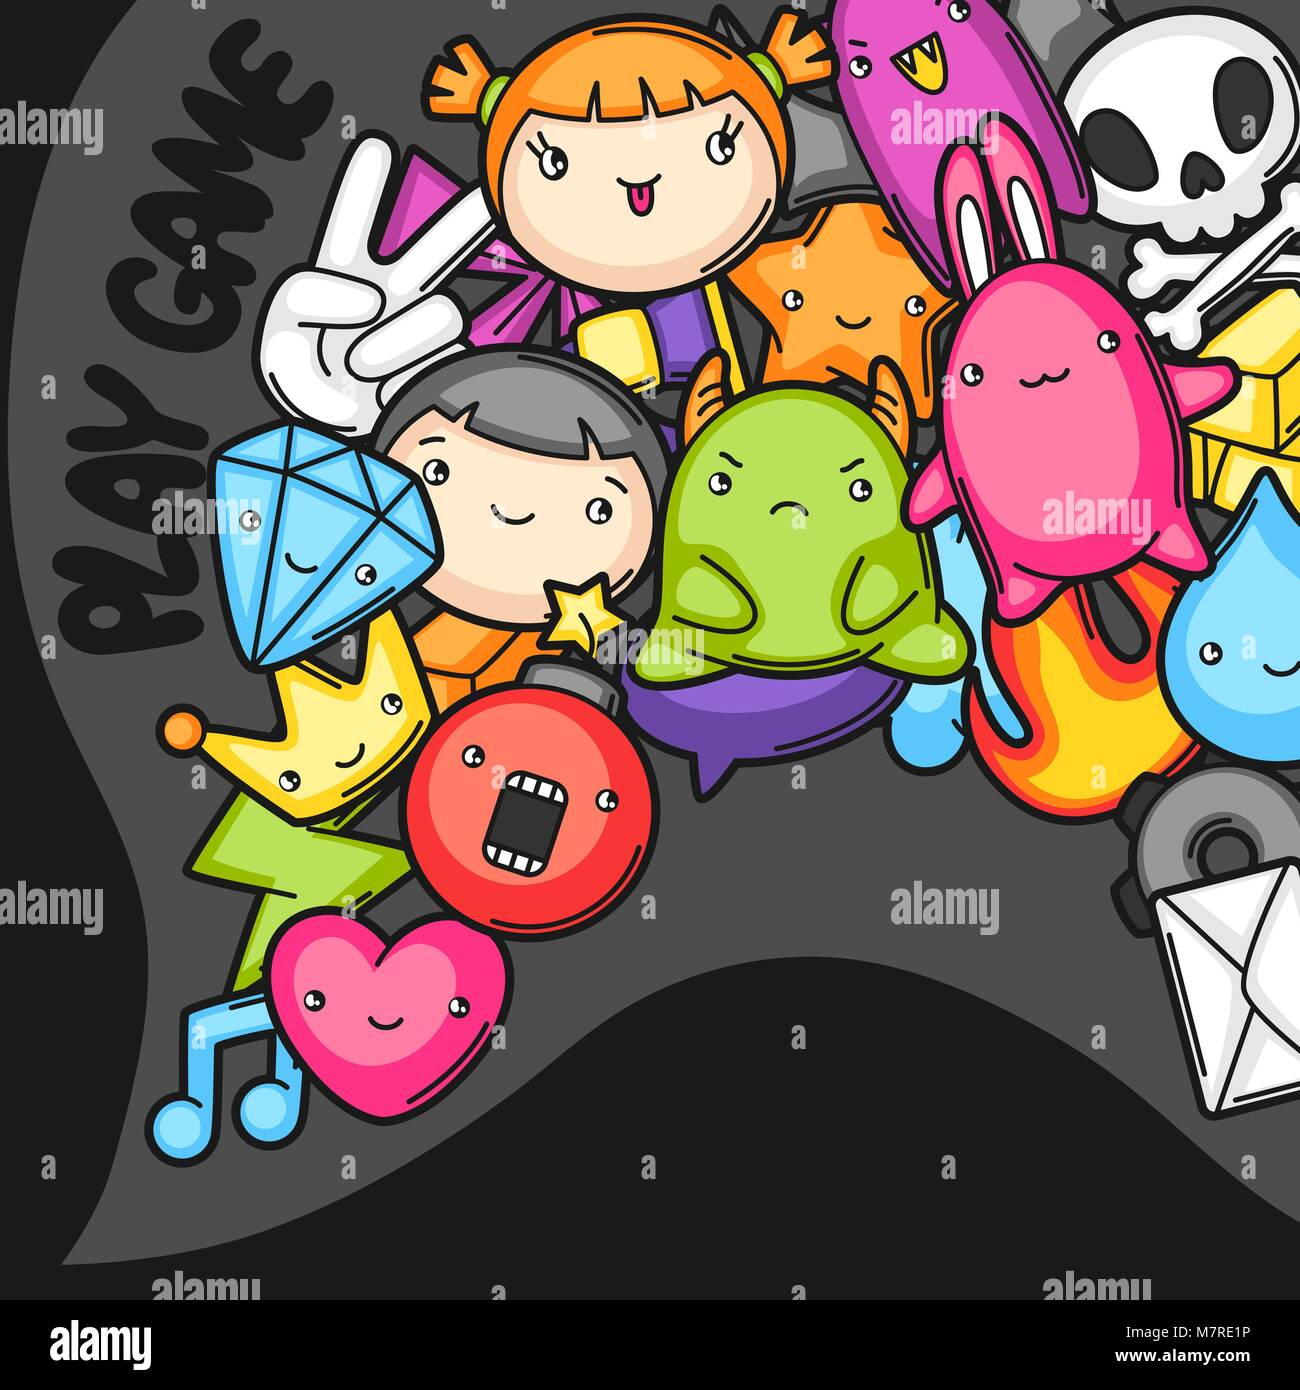 Game Kawaii Background Cute Gaming Design Elements Objects And